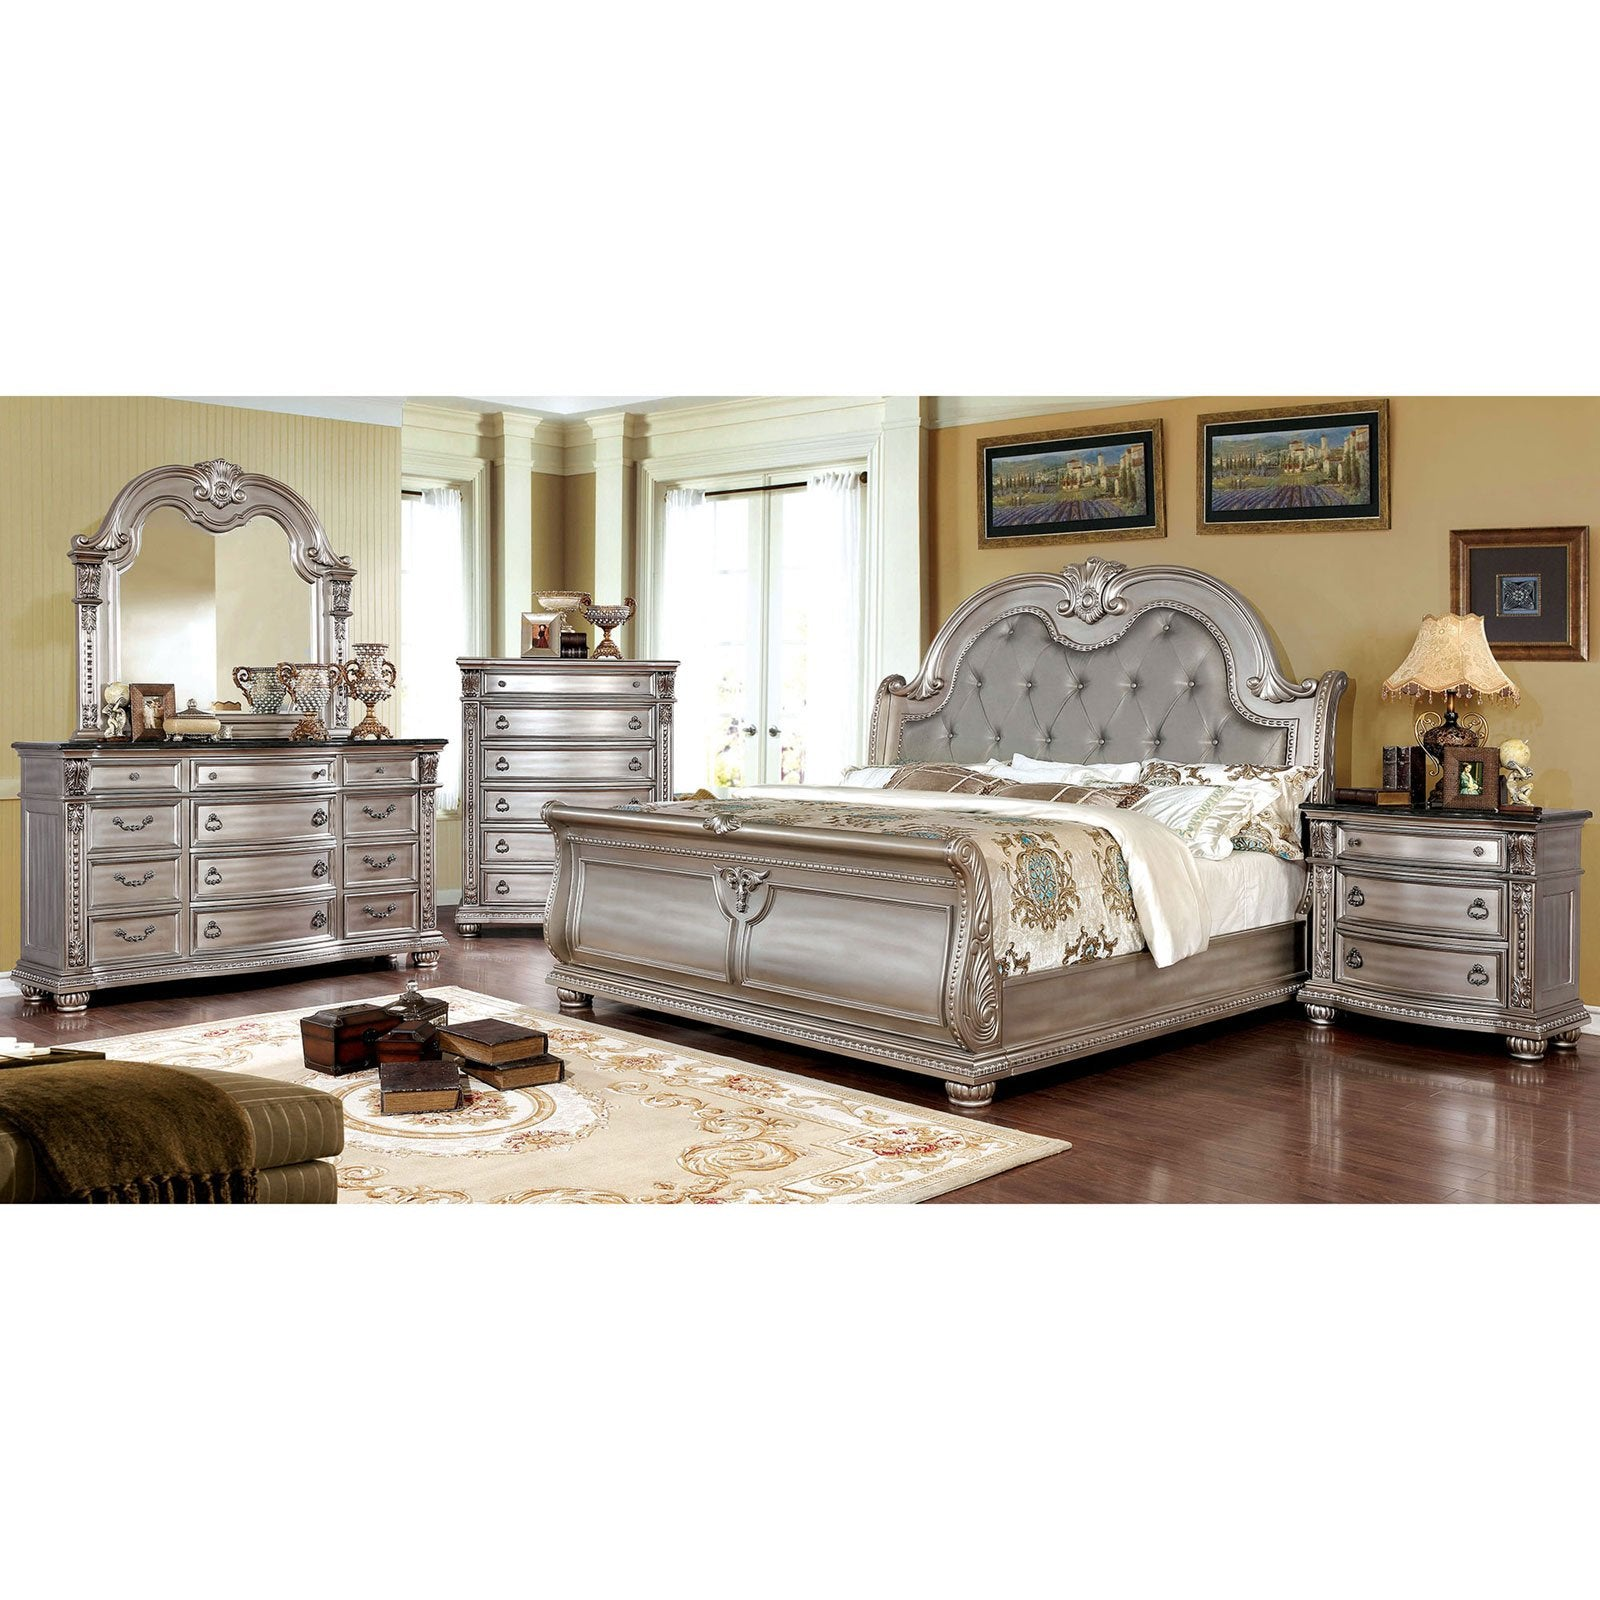 Fromberg Queen Bed - InteriorDesignsToGo.com